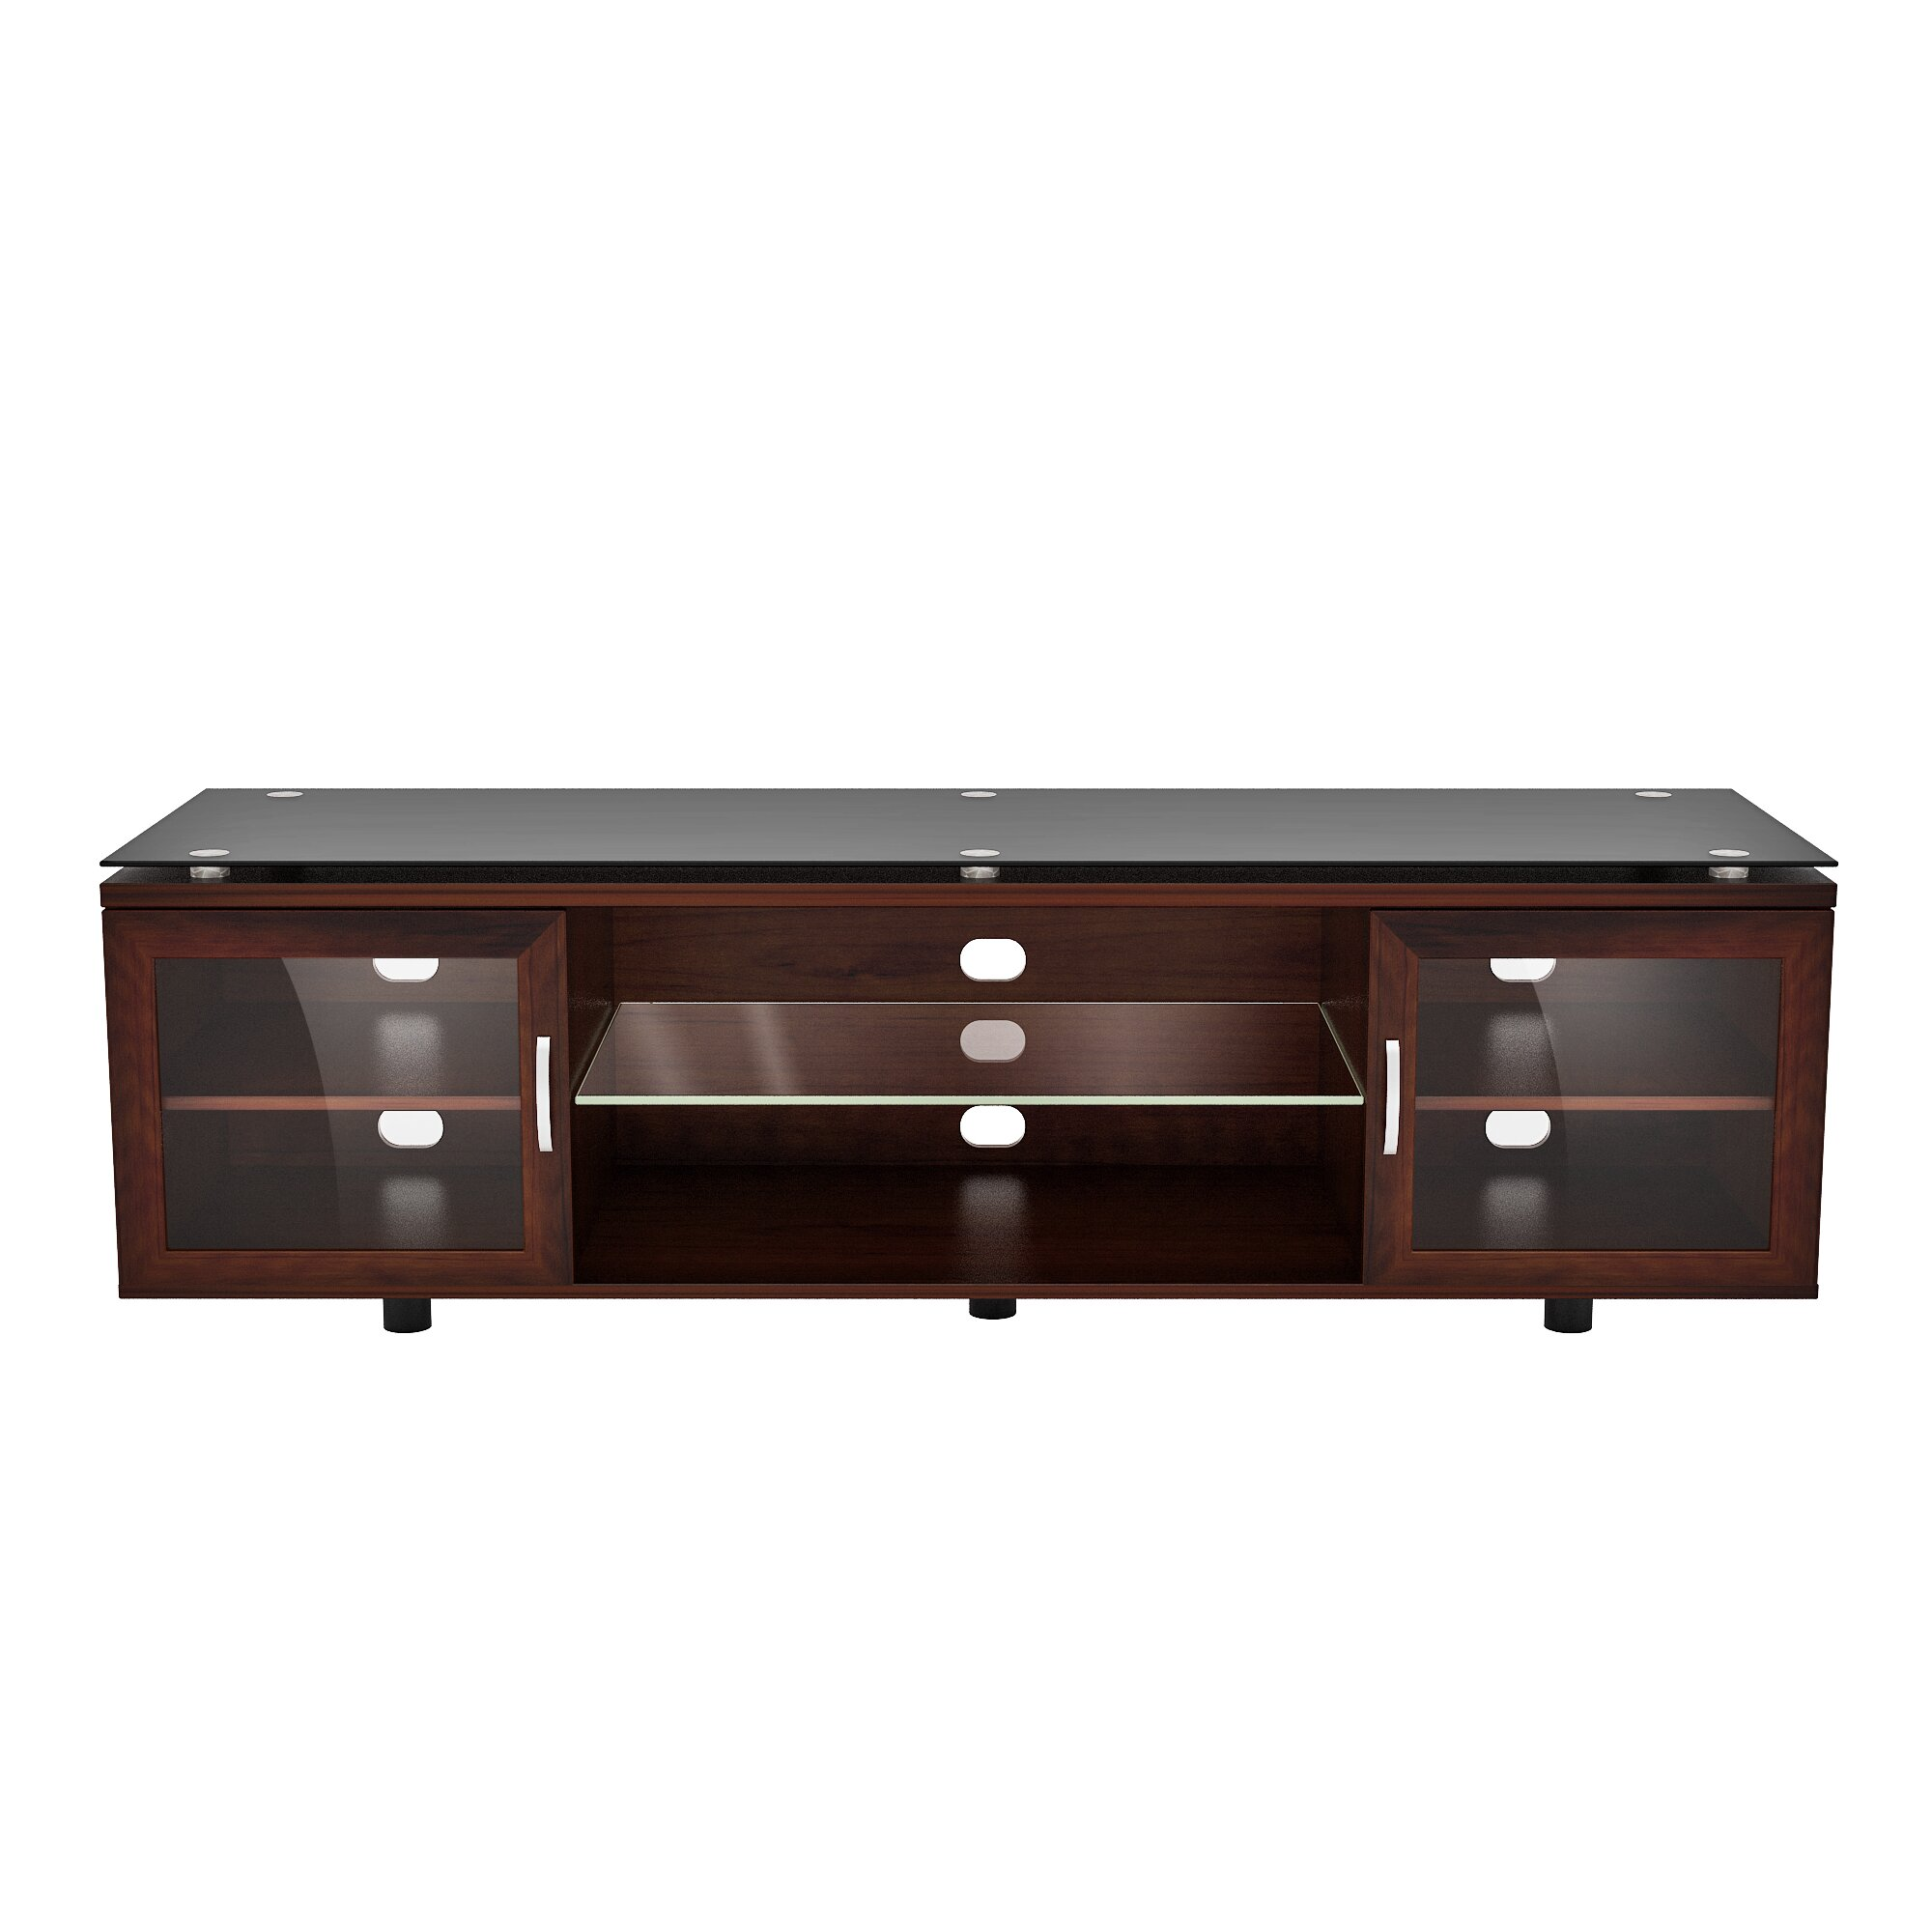 Tv Stand Designs Price : Z line designs quinn quot tv stand reviews wayfair